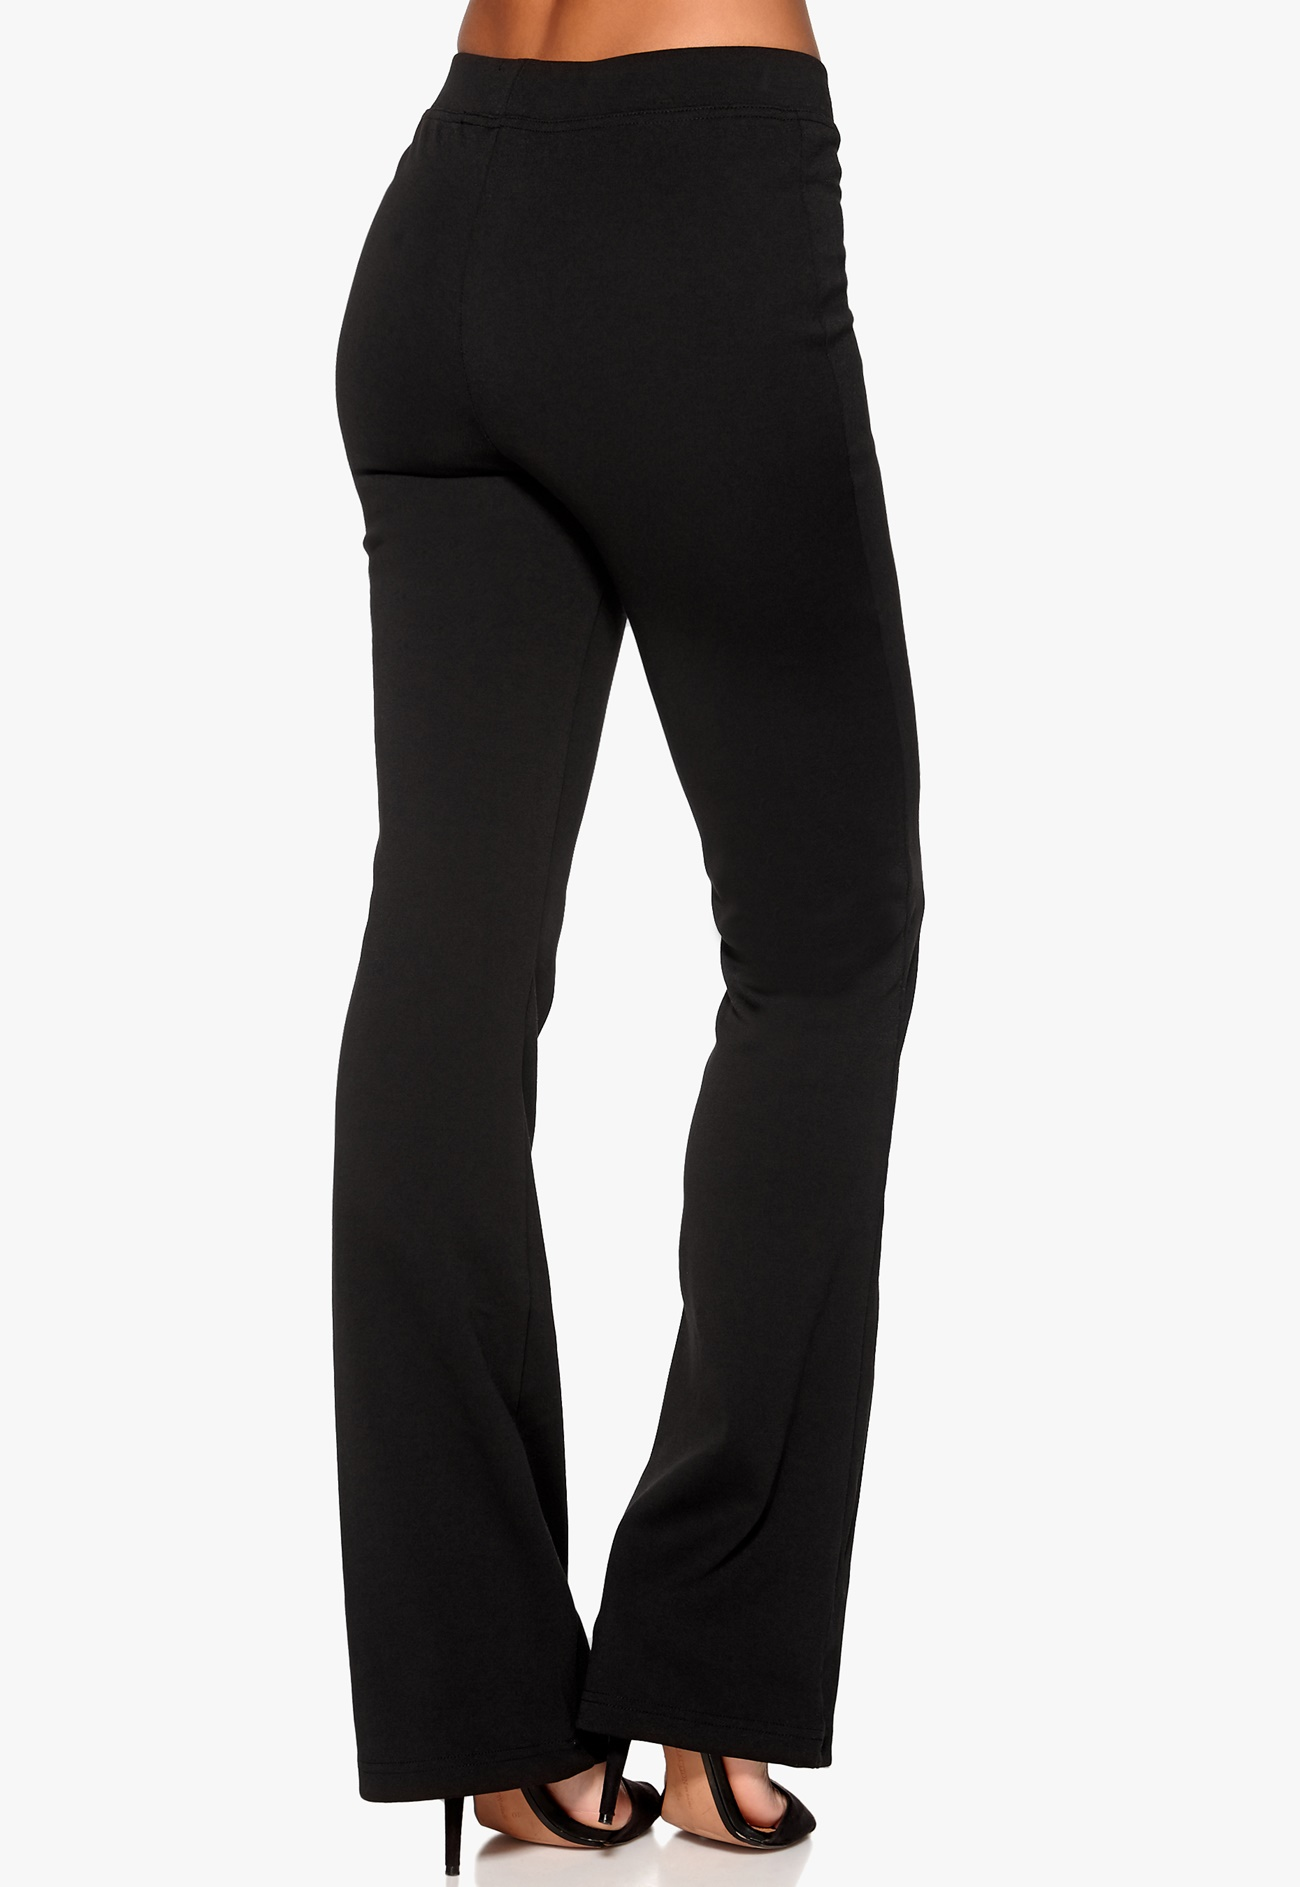 A fabulous fit in our breakthrough 4-way stretch fabric, this flattering bootcut relaxed legging is the perfect coordinate for chic long sweaters and tunics.